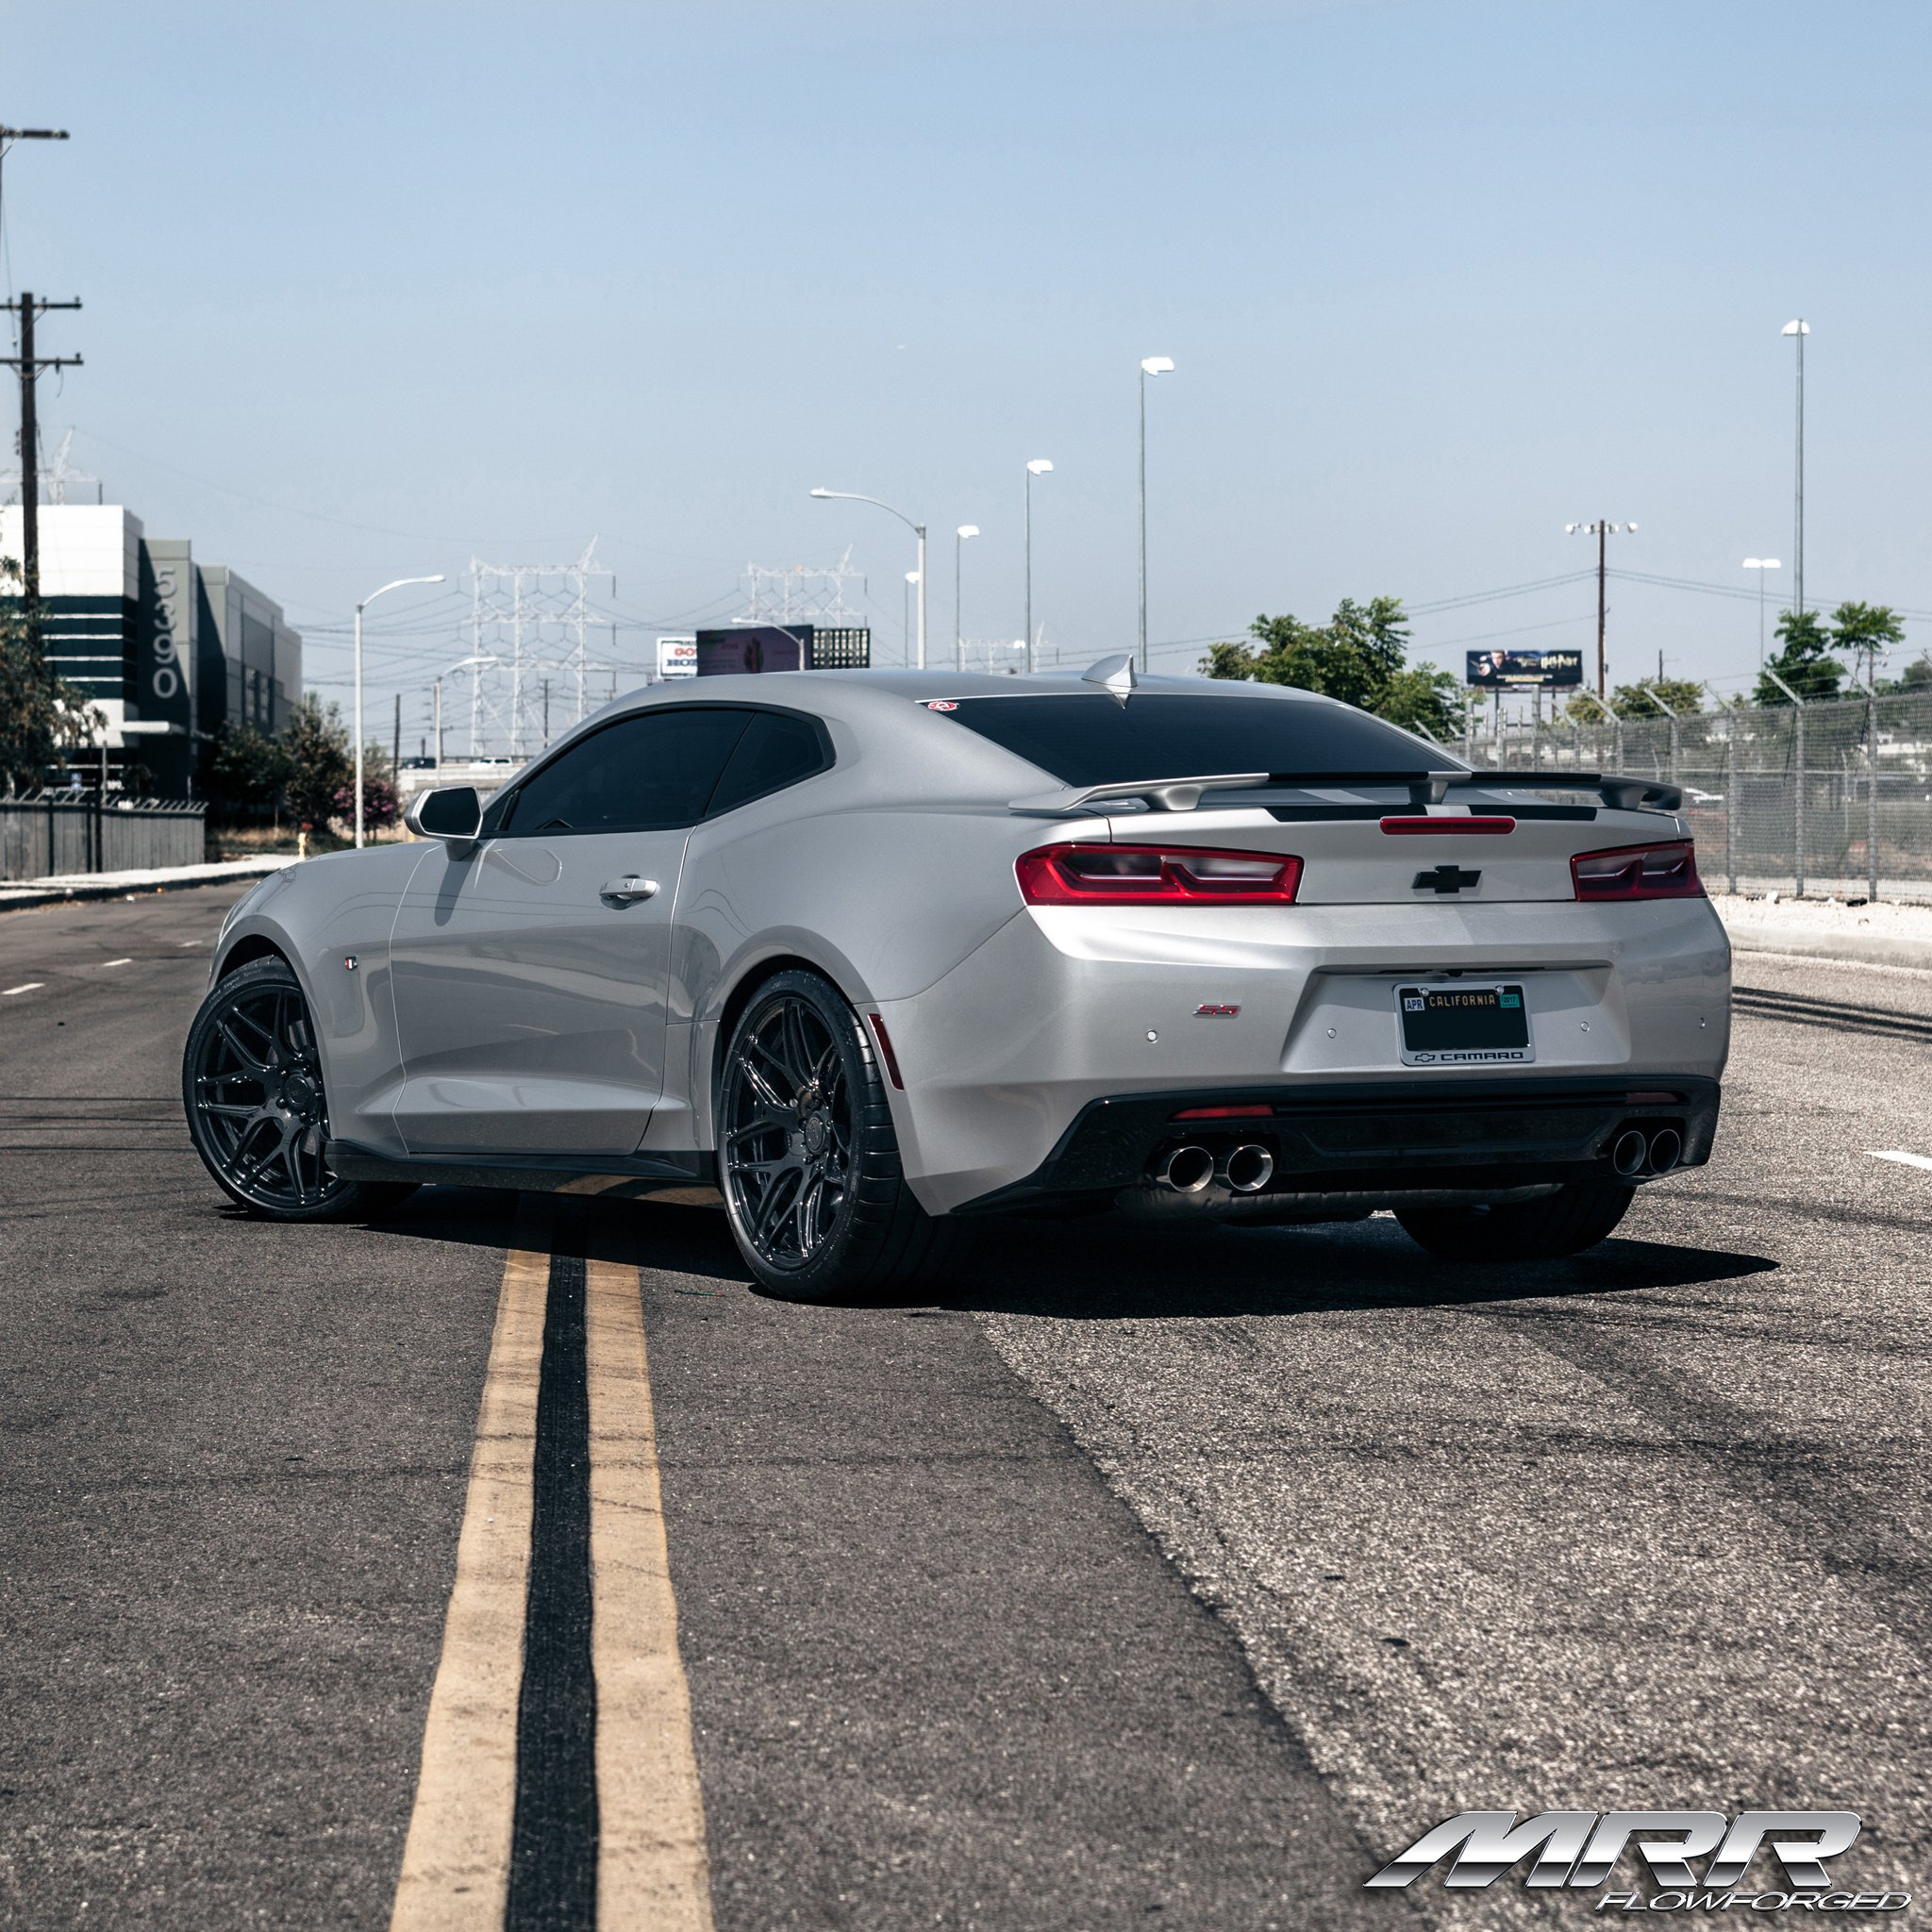 Chevy Camaro Ss Black Chrome Mrr Wheels Photo By